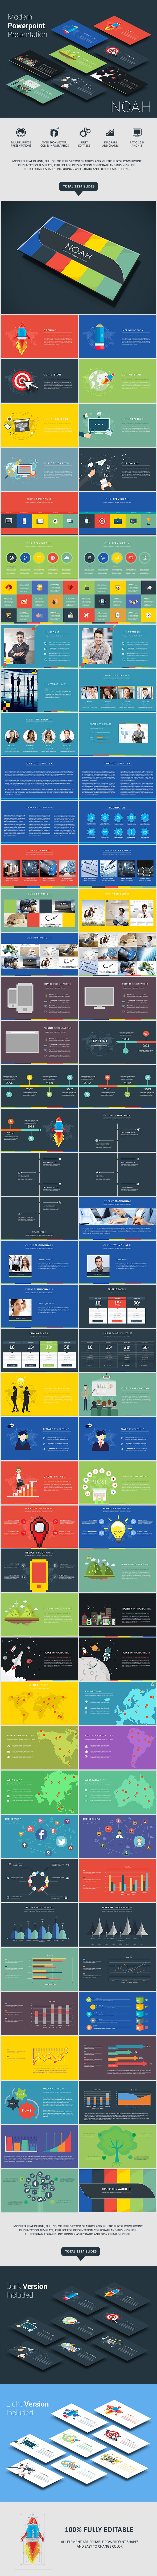 NOAH - Multipurpose Powerpoint Presentations (PowerPoint Templates)